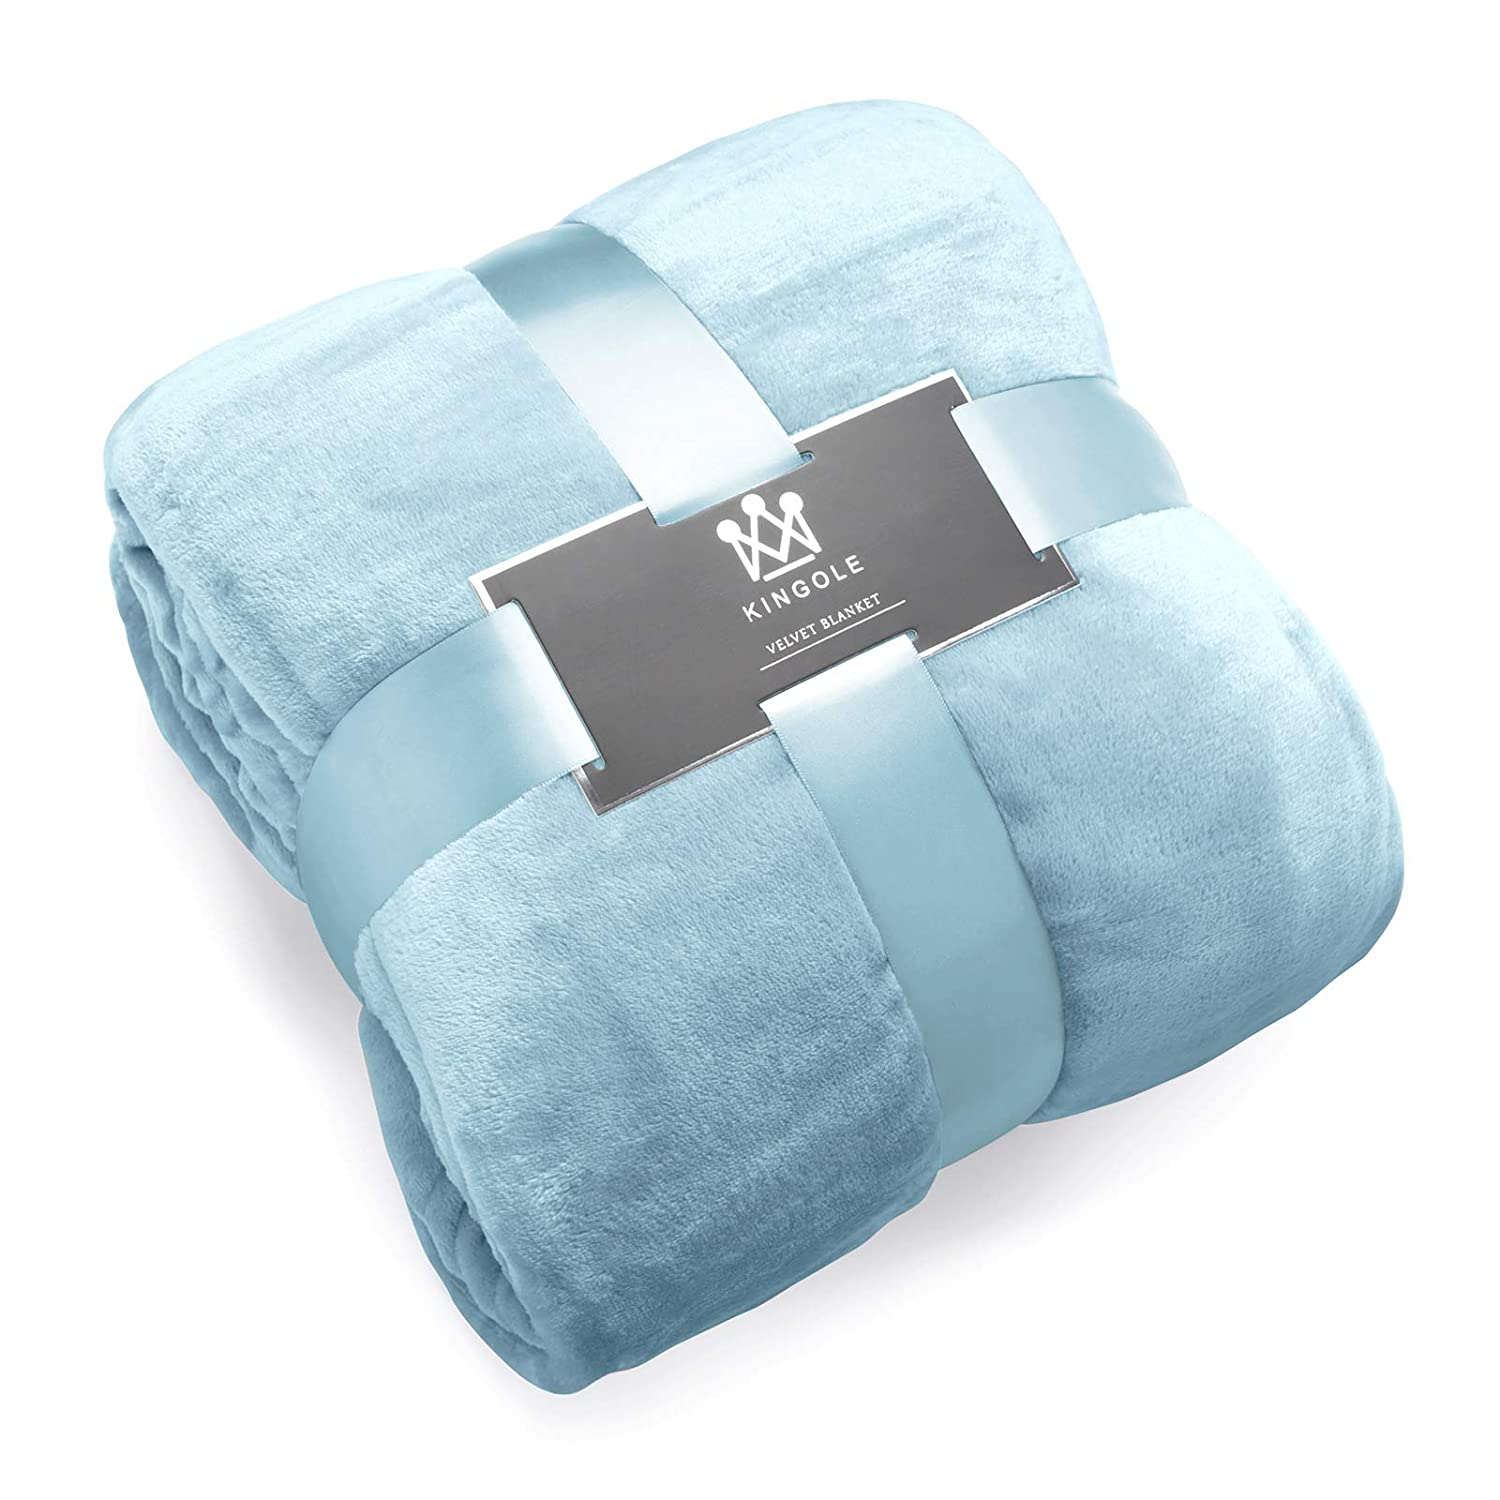 Kingole Flannel Fleece Microfiber Throw Blanket, Luxury Light Blue Queen Size Lightweight Cozy Couch Bed Super Soft and Warm Plush Solid Color 350GSM (90 x 90 inches)